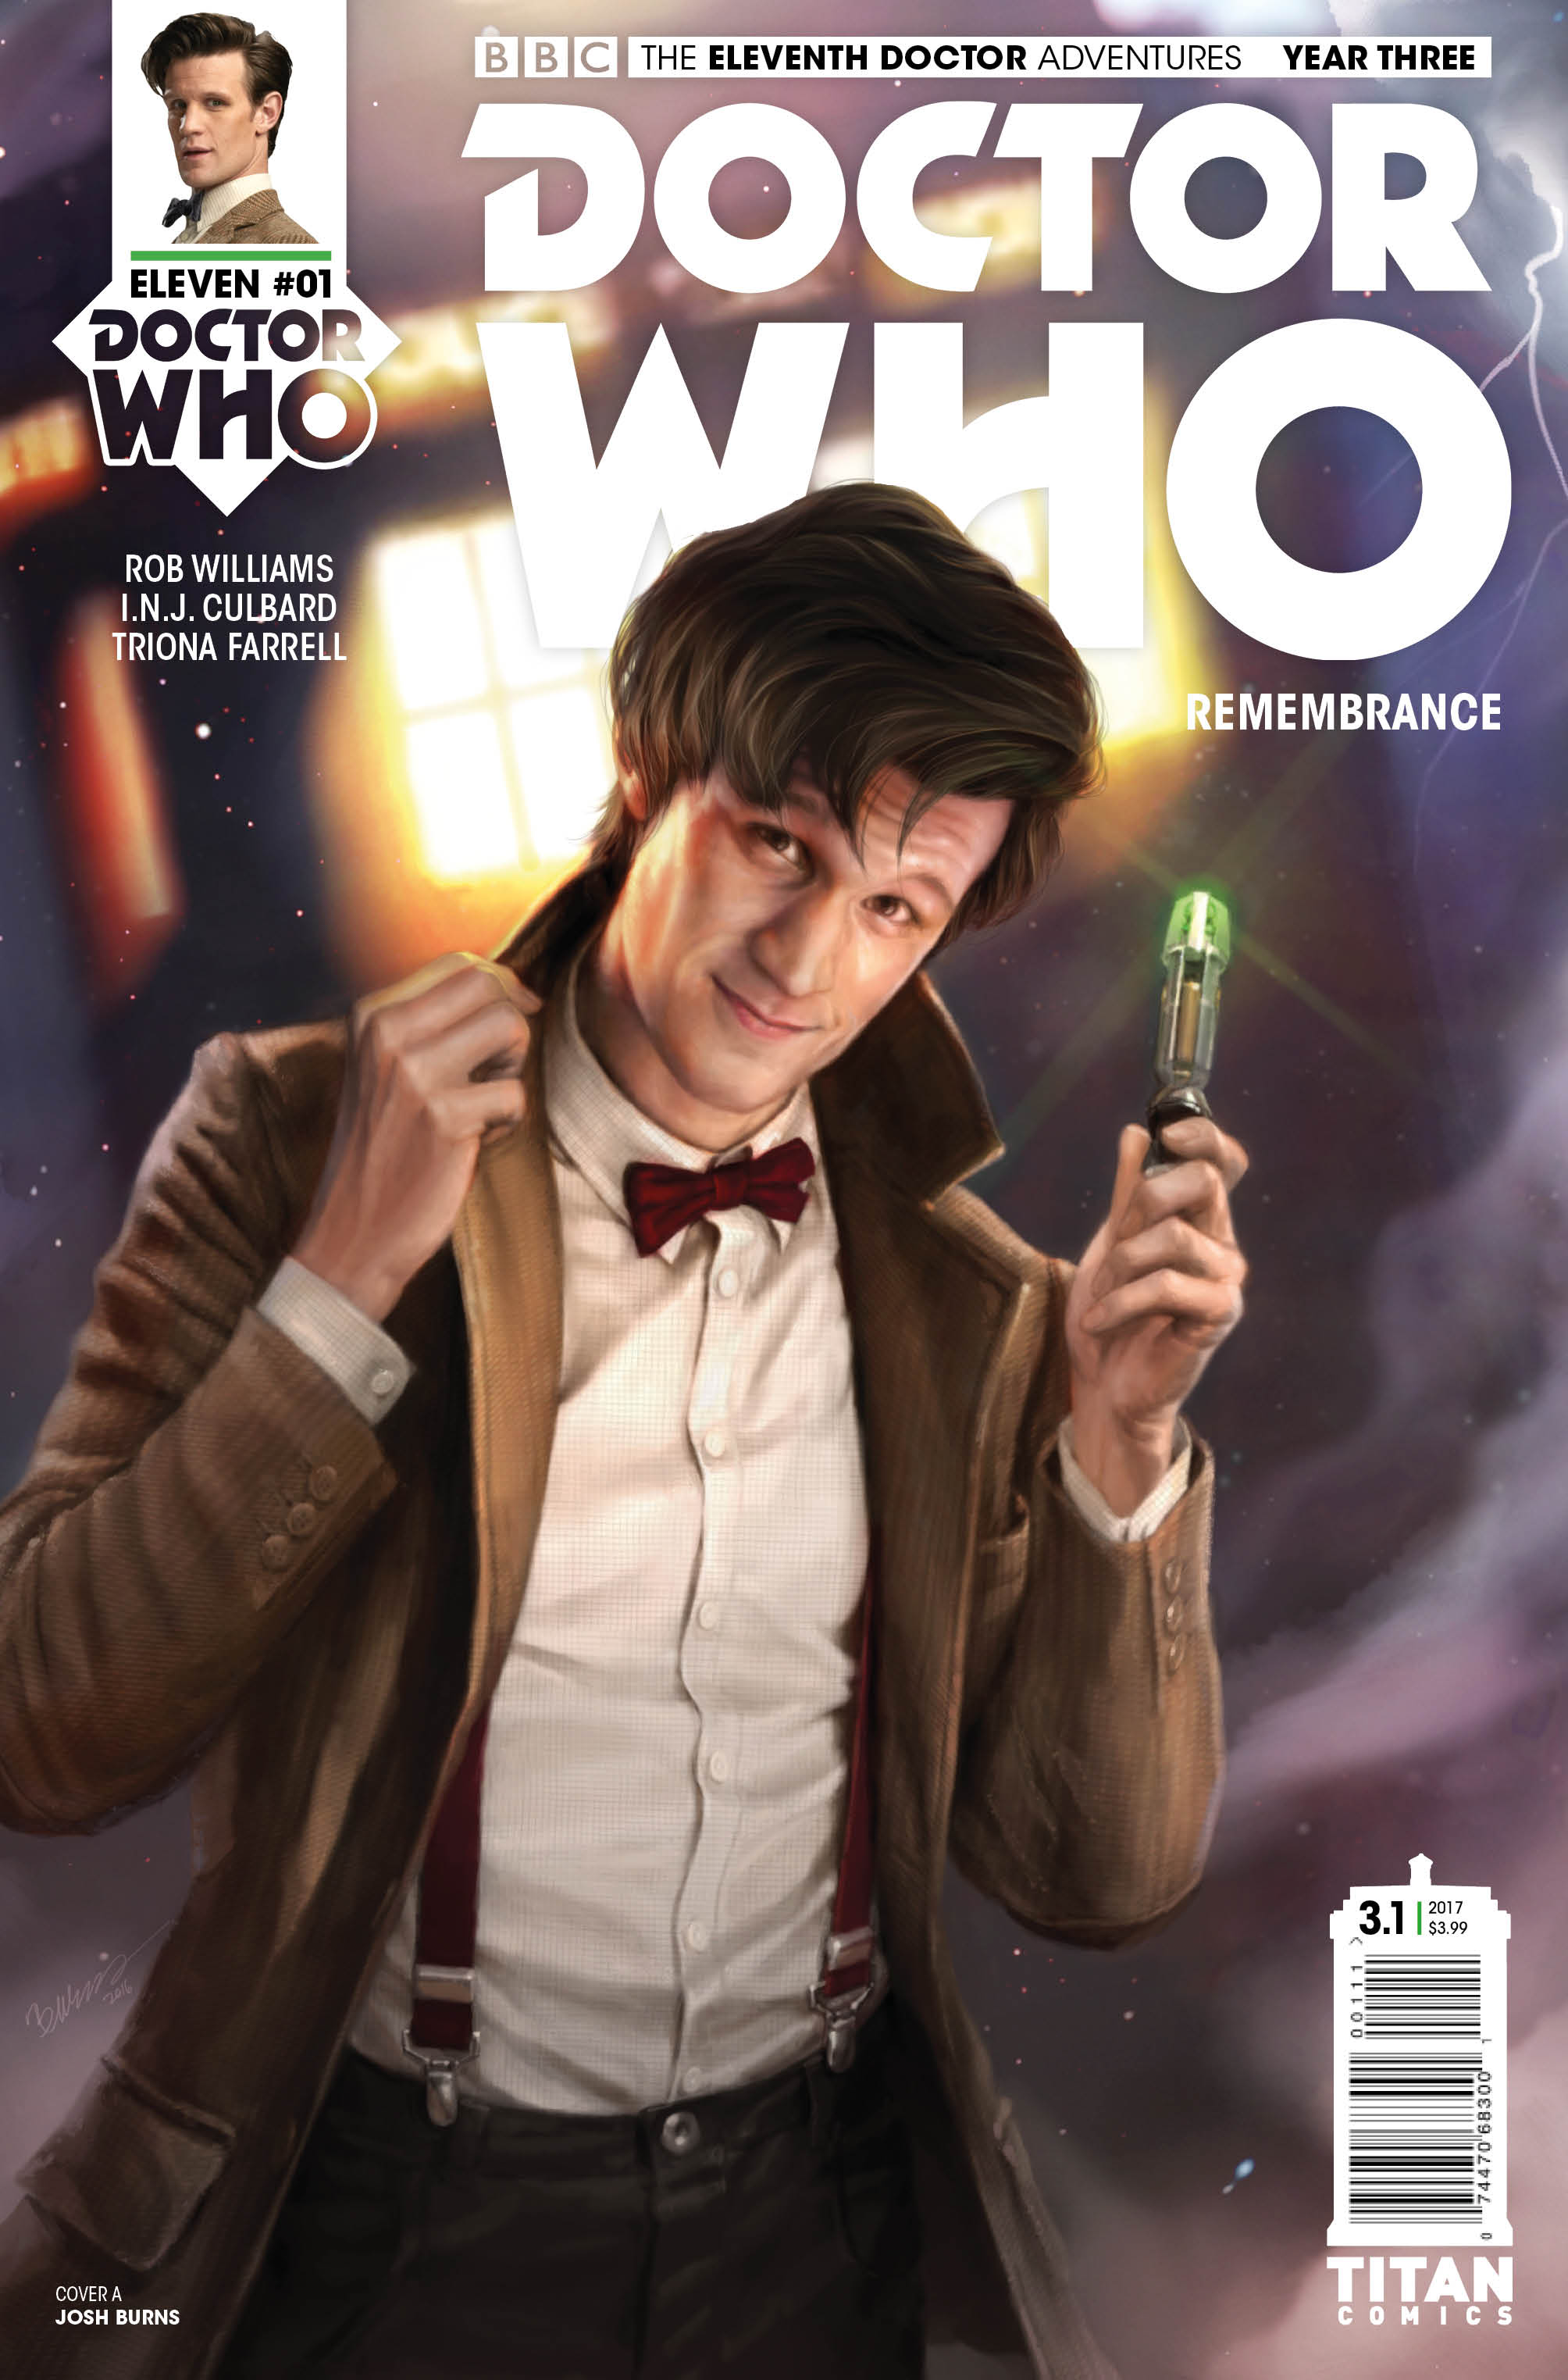 ELEVENTH DOCTOR YEAR THREE #1 Cover_A_Josh_Burns (Credit: Titan)